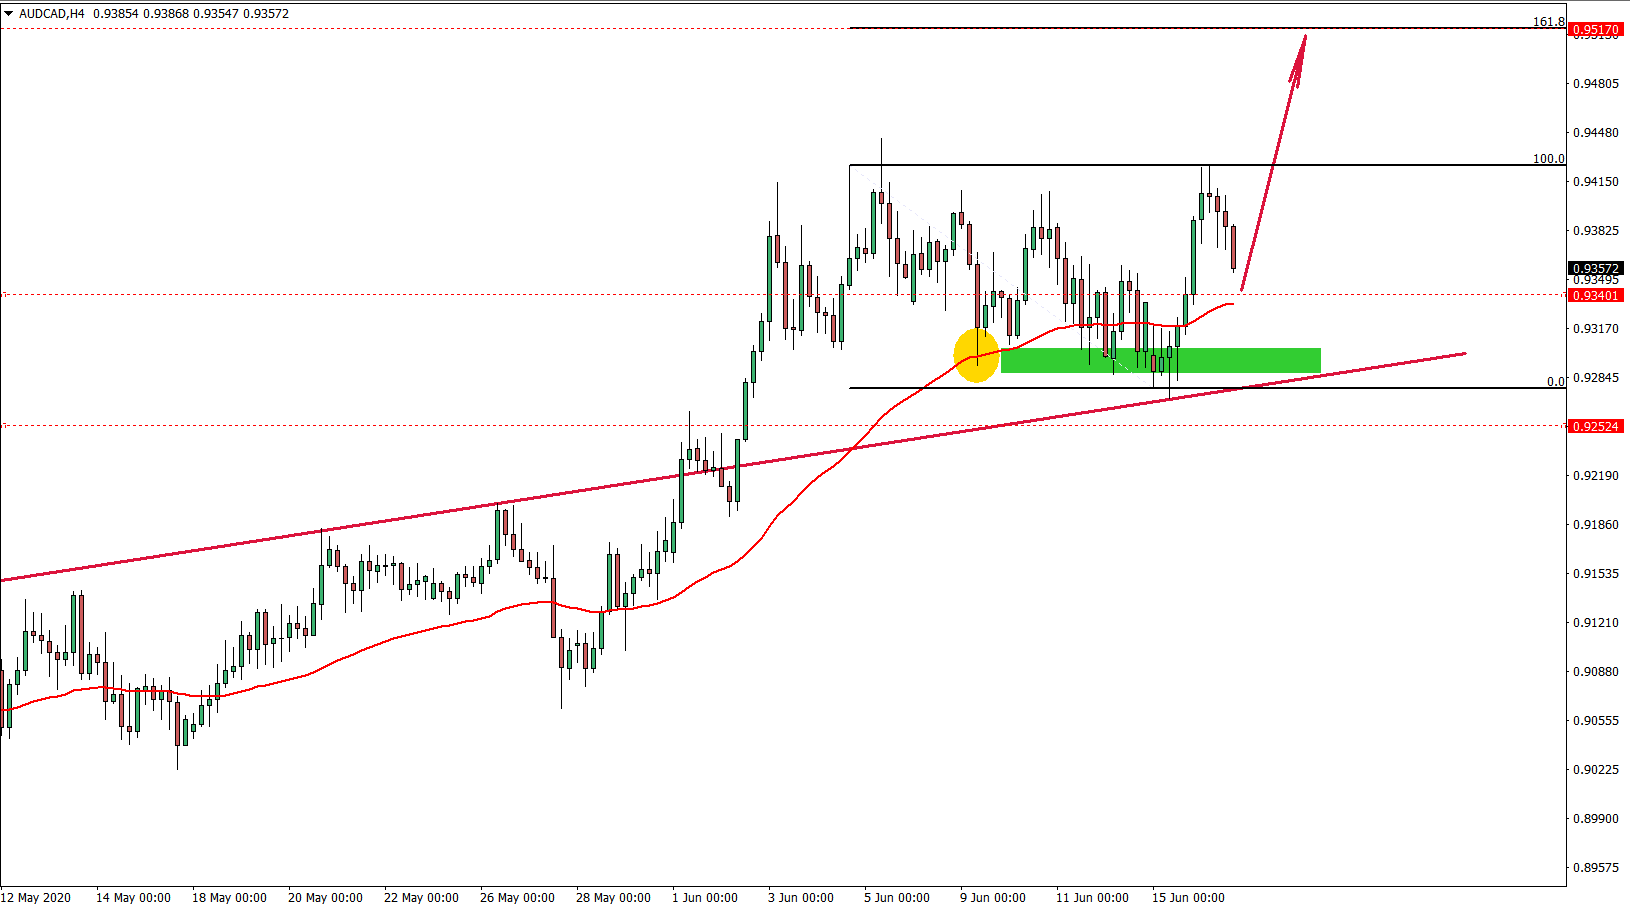 AUDCAD 4hour chart June 16th 2020